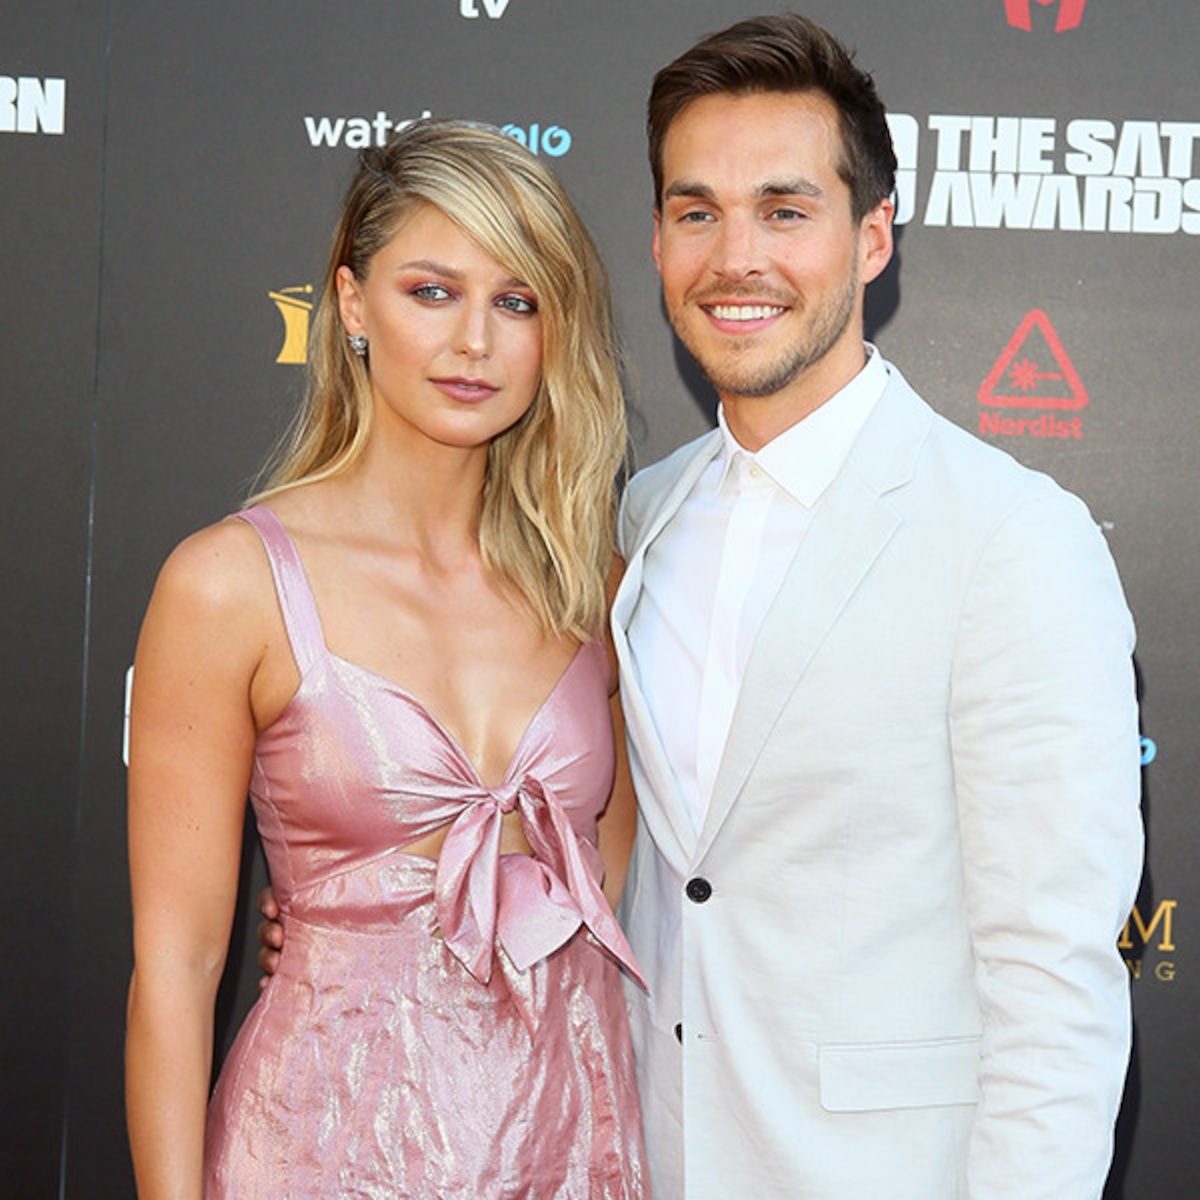 Melissa Benoist and Chris Wood Step Out After Wedding - E! Online